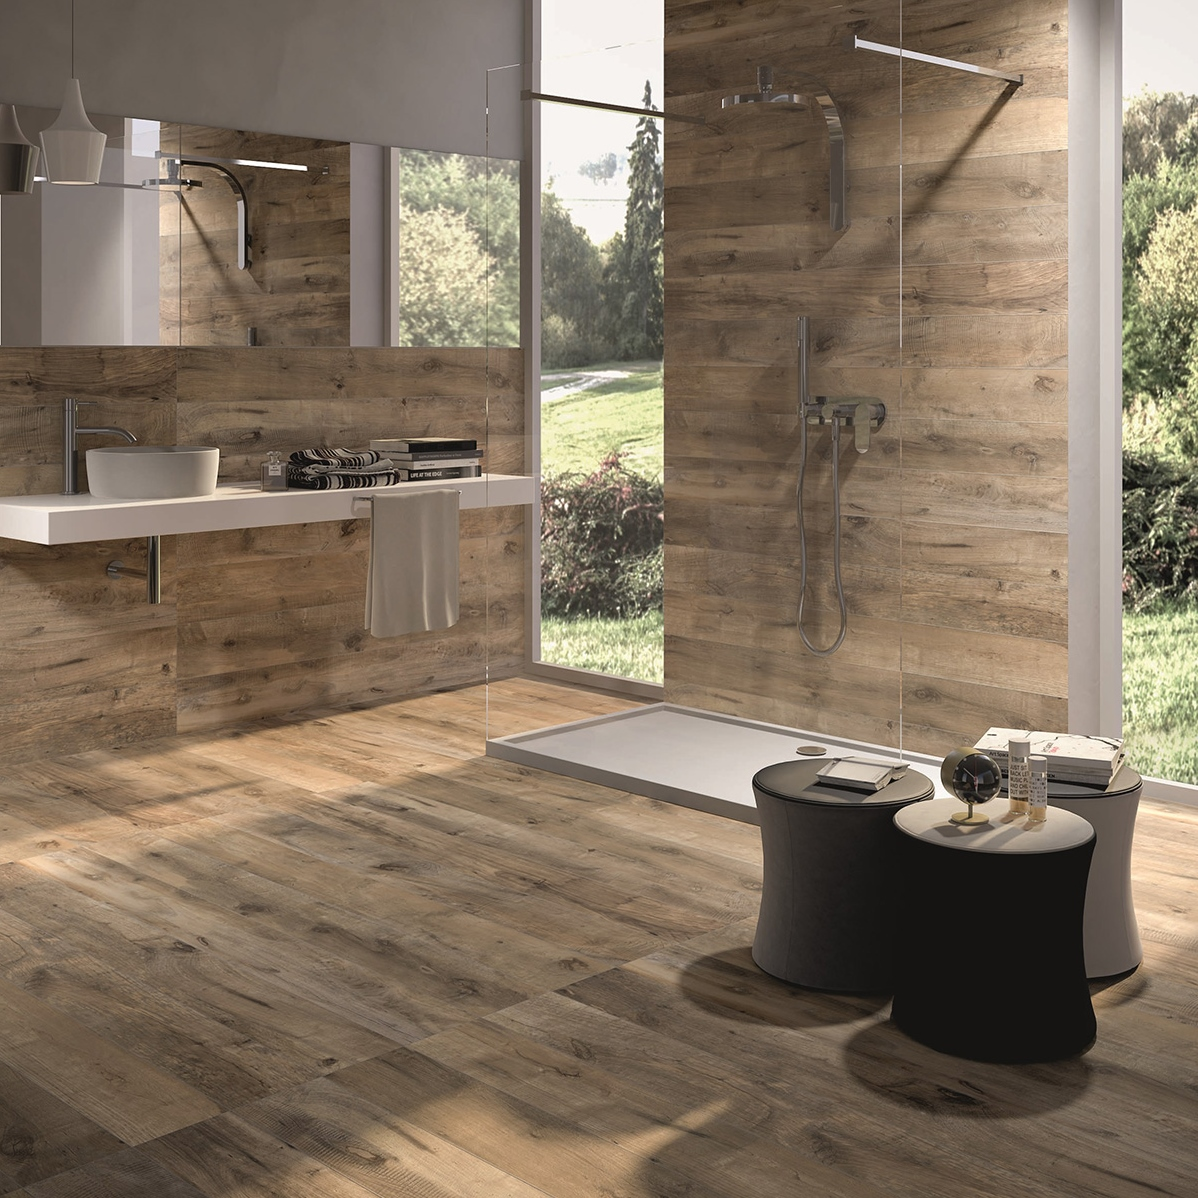 Flaviker dakota wood look tile flooring dailygadgetfo Choice Image